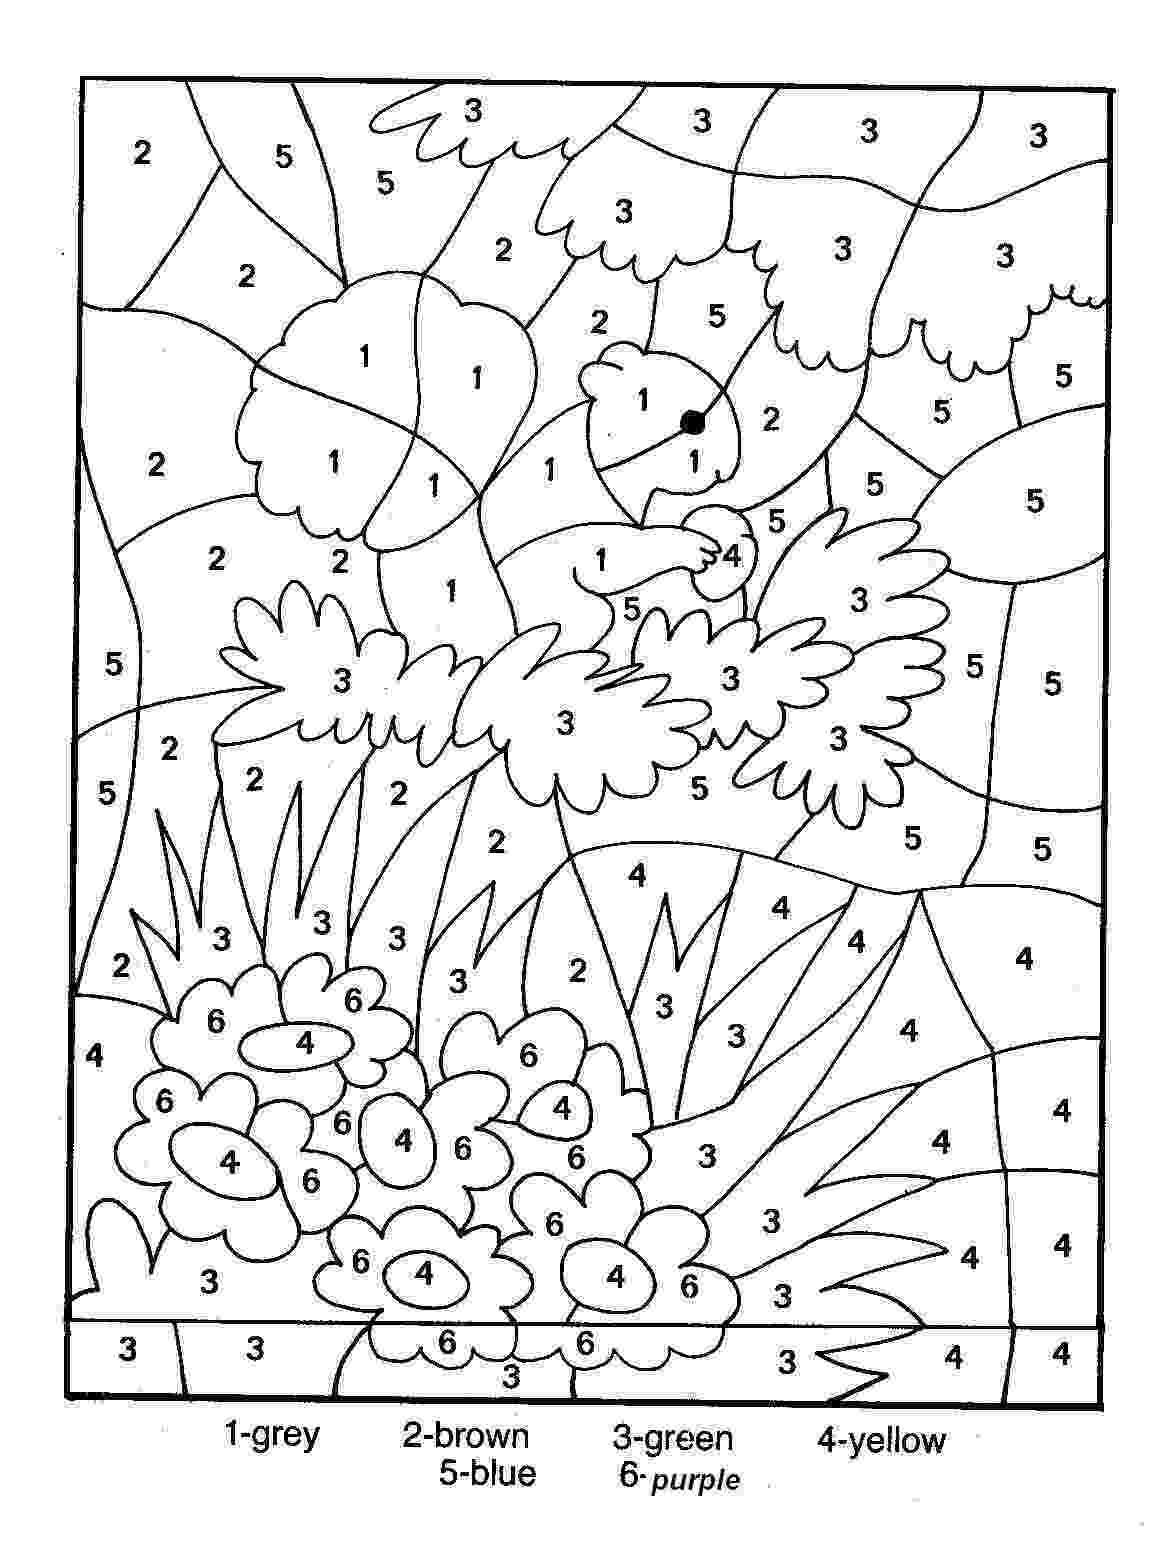 colouring for adults by numbers grown up coloring pages to download and print for free colouring numbers by for adults